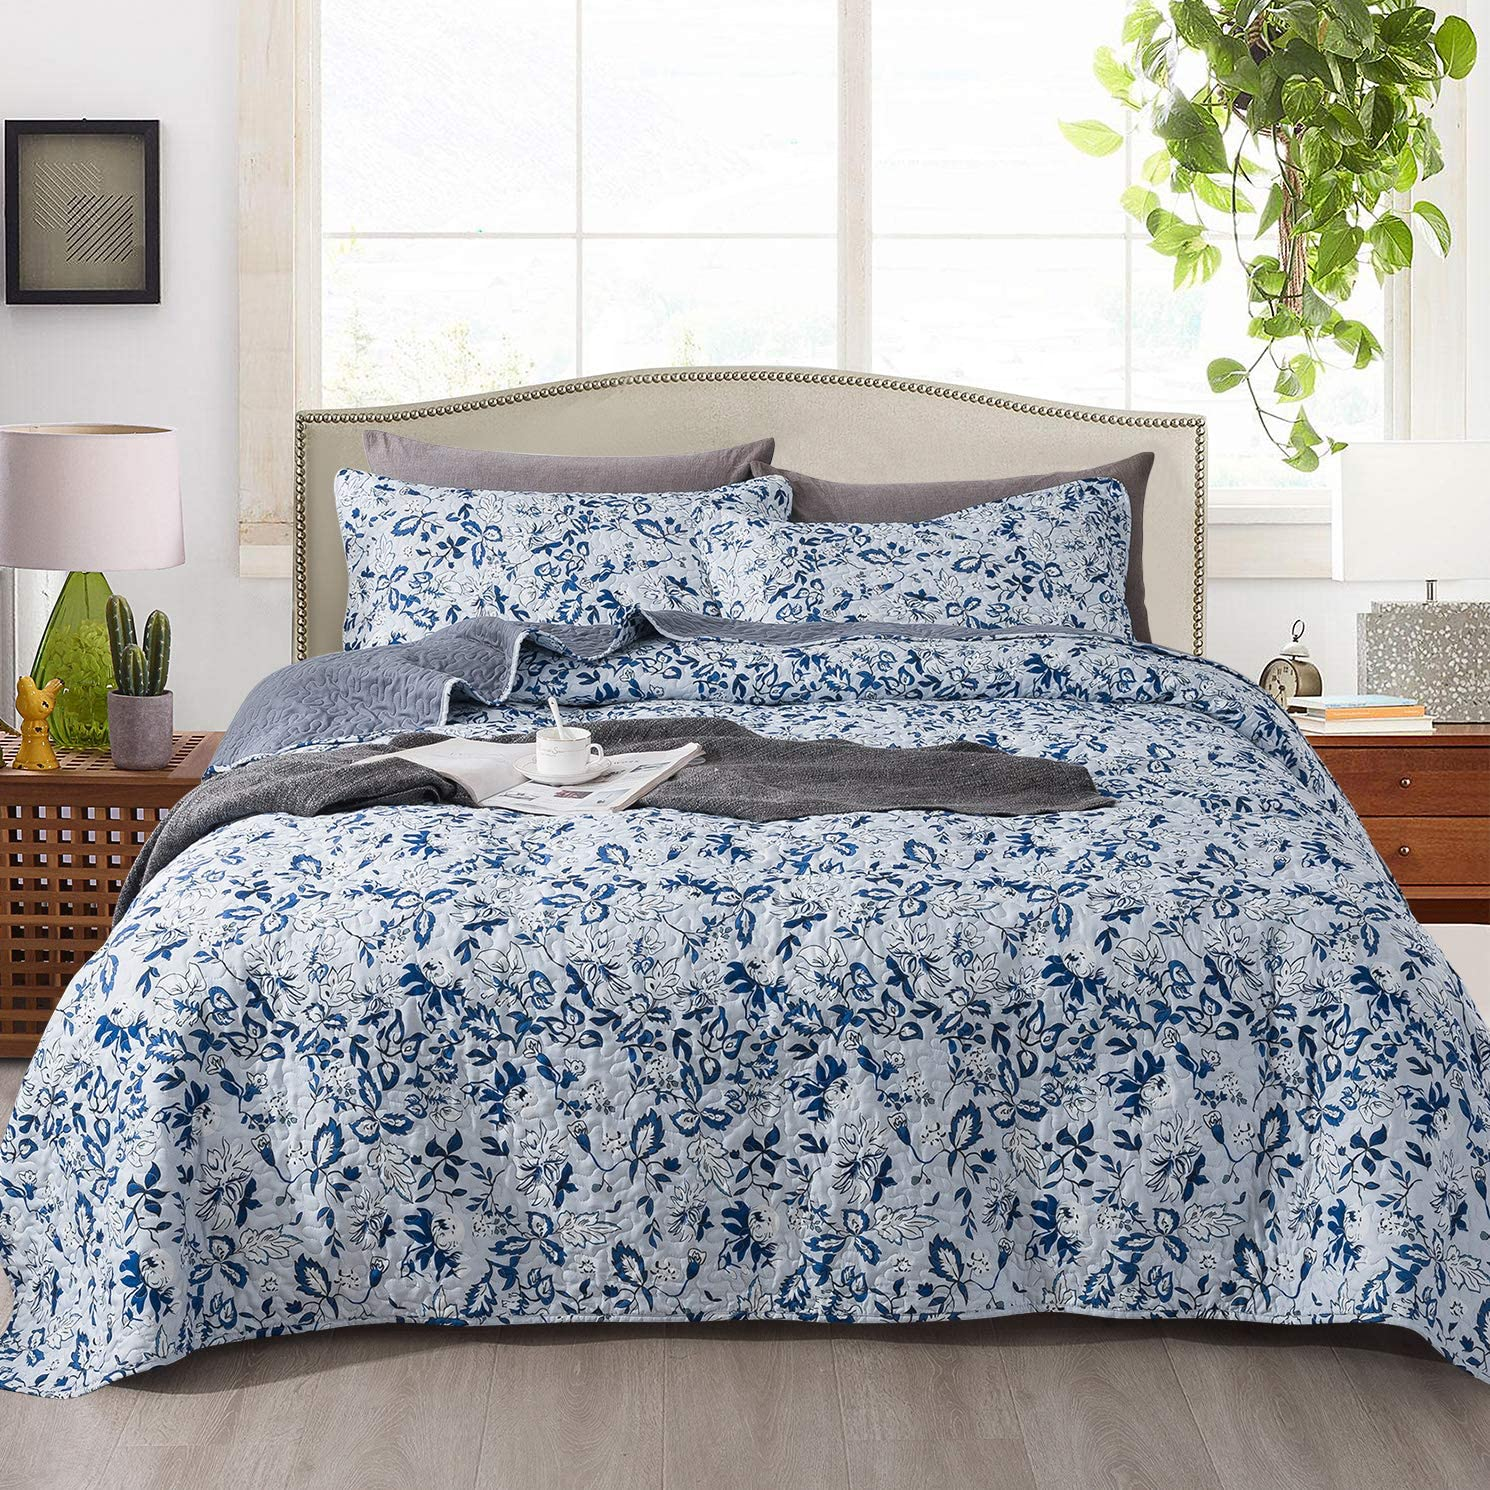 NEWLAKE Quilt Bedspread Sets-Spring Blooming Garden Pattern Reversible Coverlet Set,Queen Size